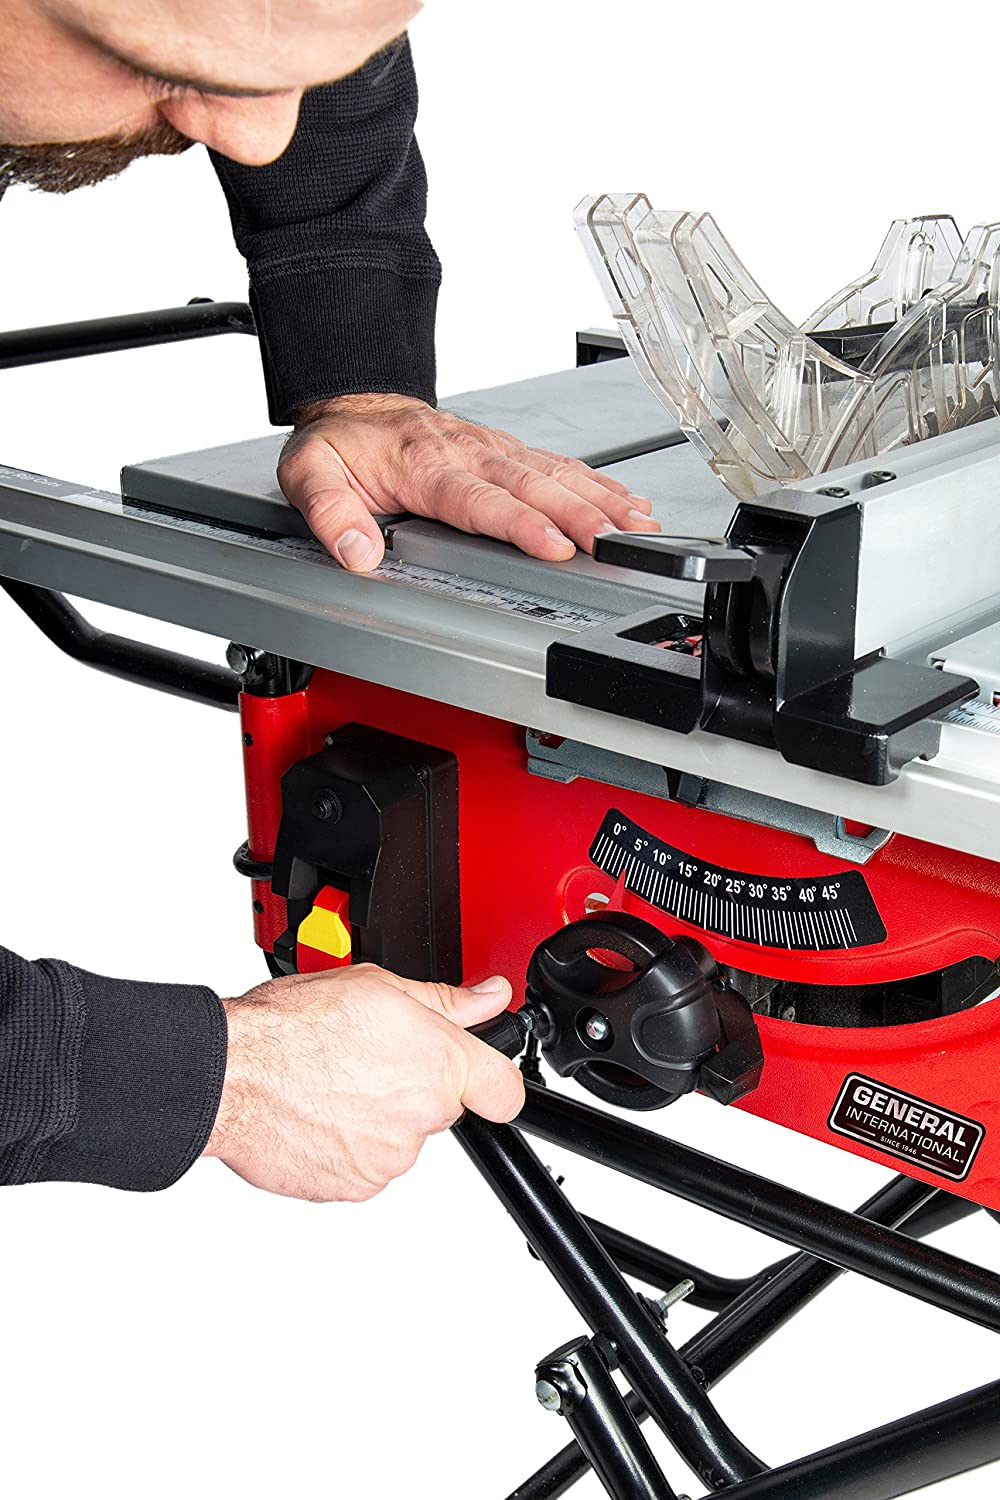 General International TS4004 Table Saws product image 9